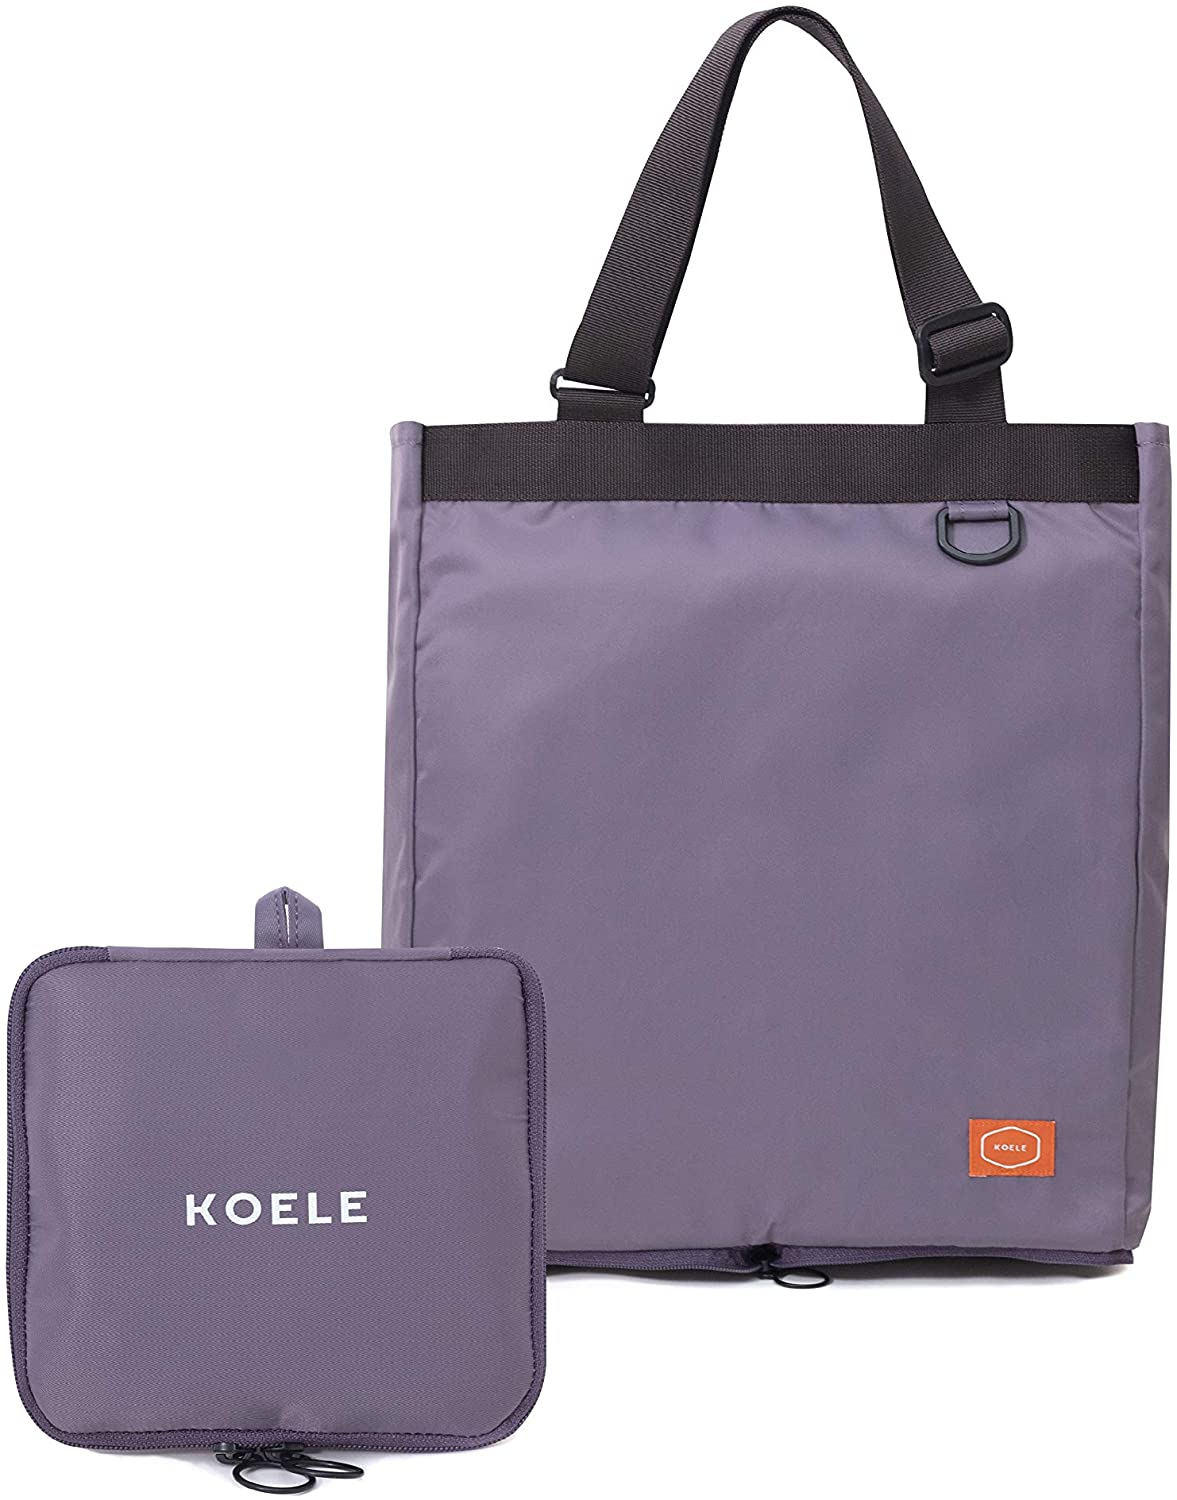 Foldable, Transform and Simple 100% Nylon waterproof and adjustable for tote, pouch and grocery bags